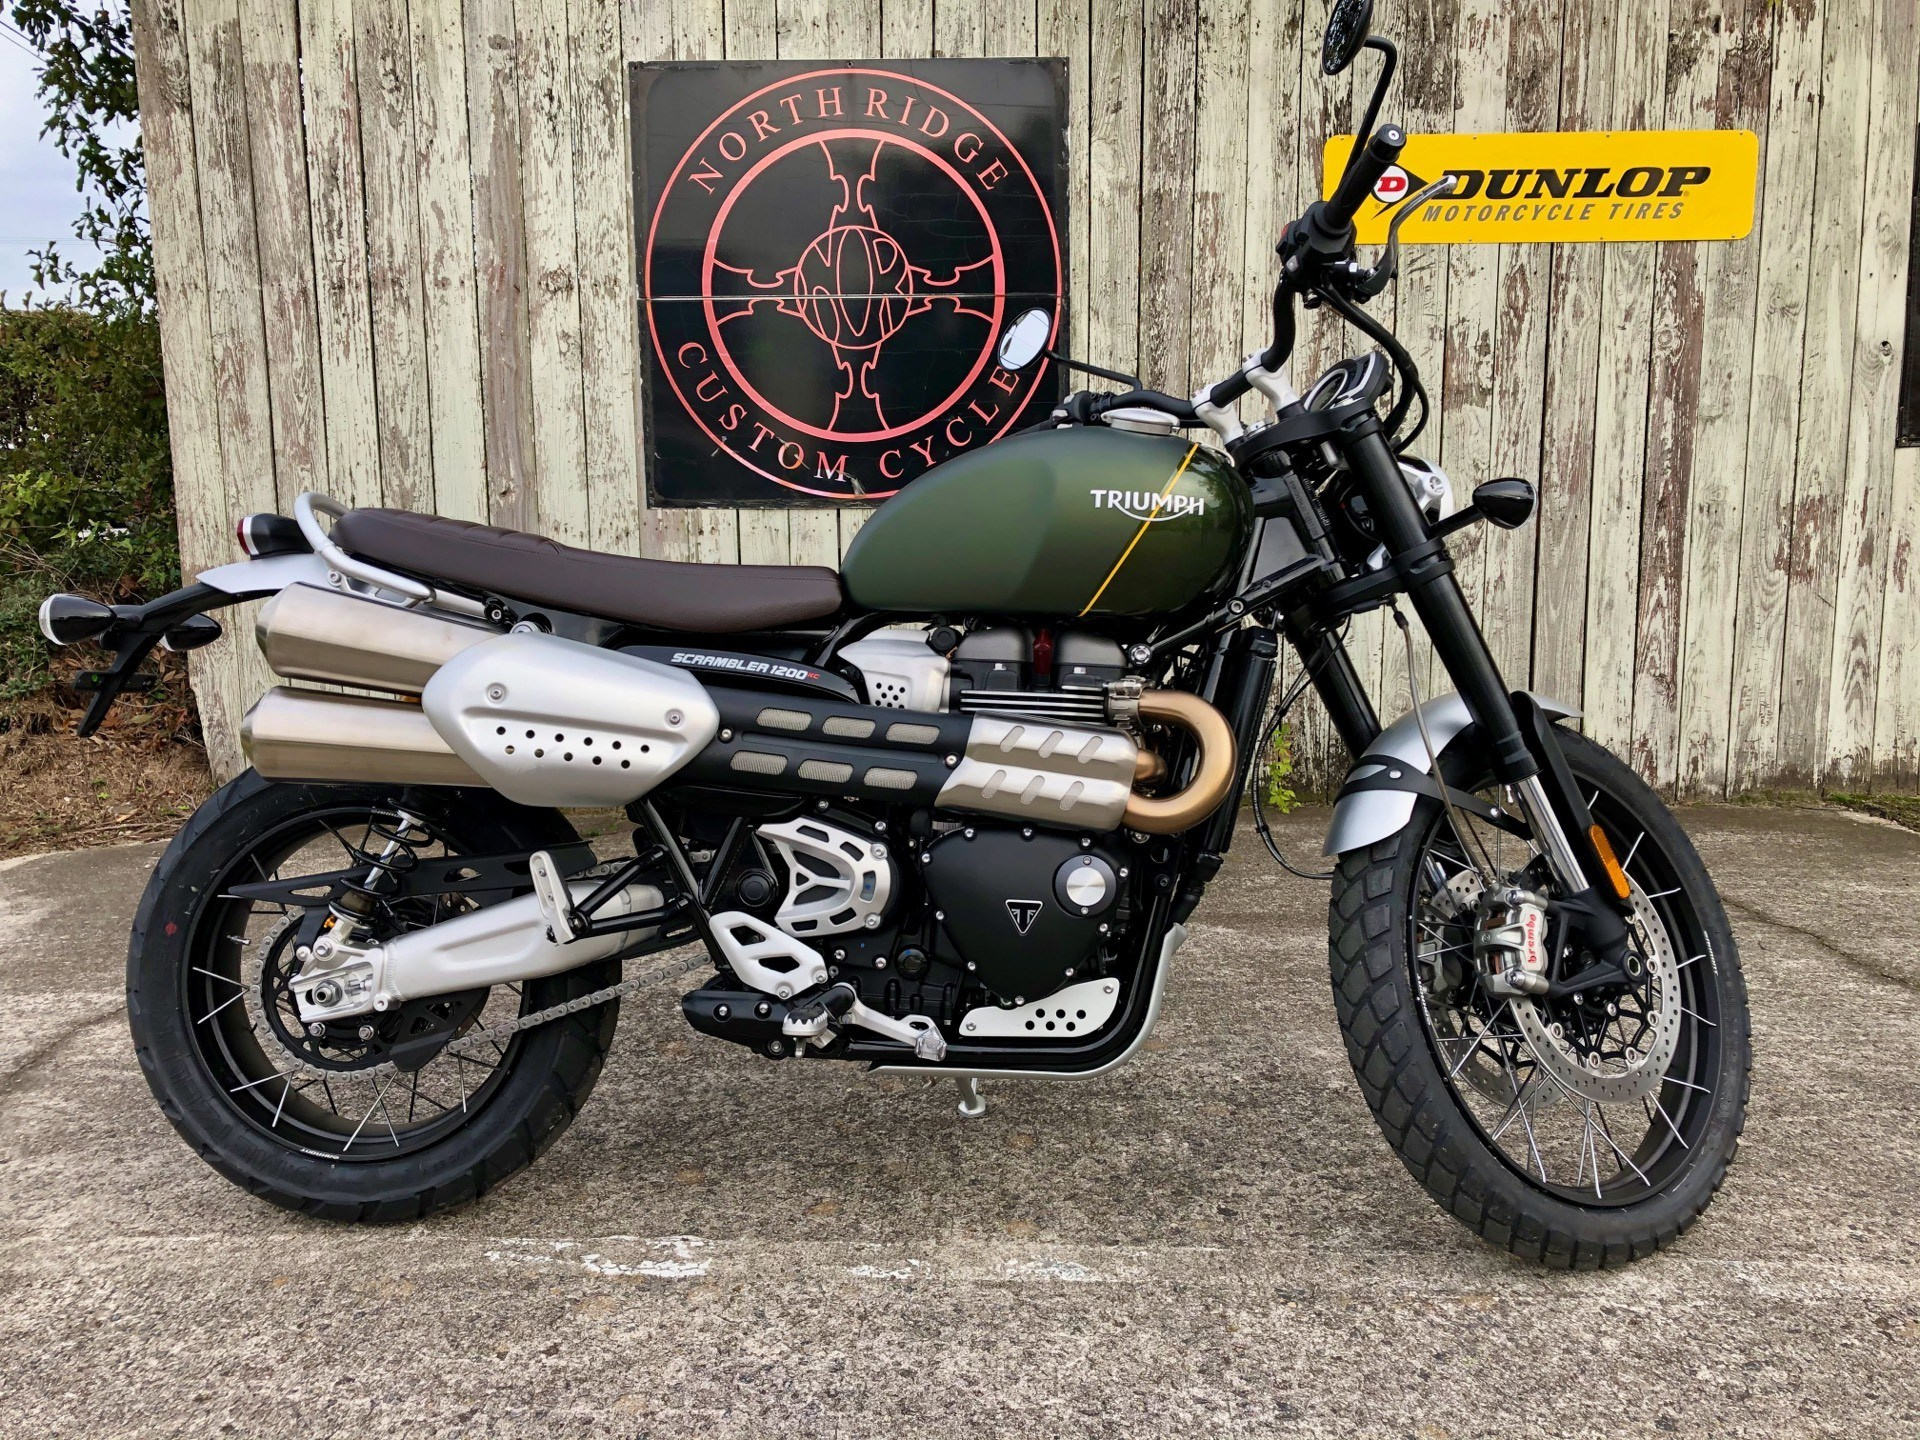 2020 Triumph Scrambler 1200 XC in Charleston, South Carolina - Photo 1